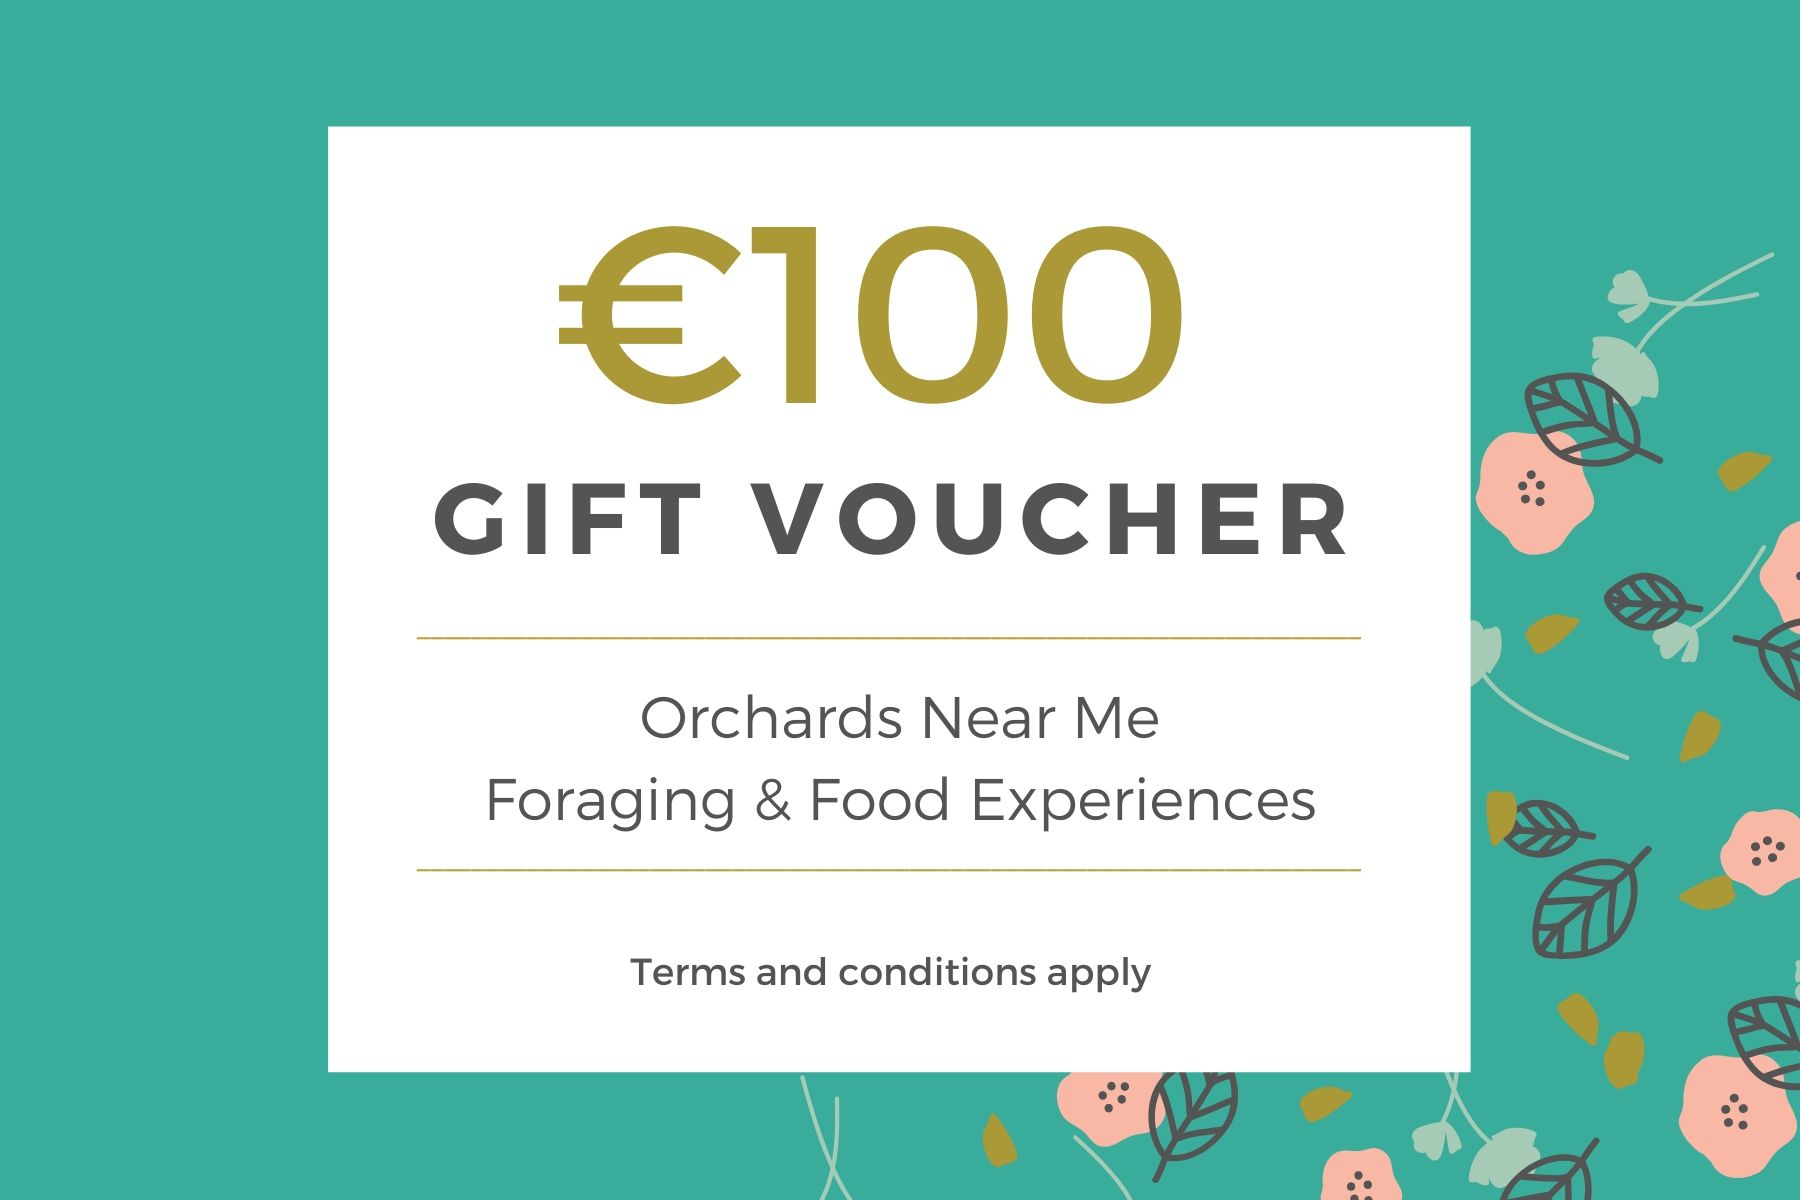 100-euro-foraging-gift-voucher-orchards-near-me